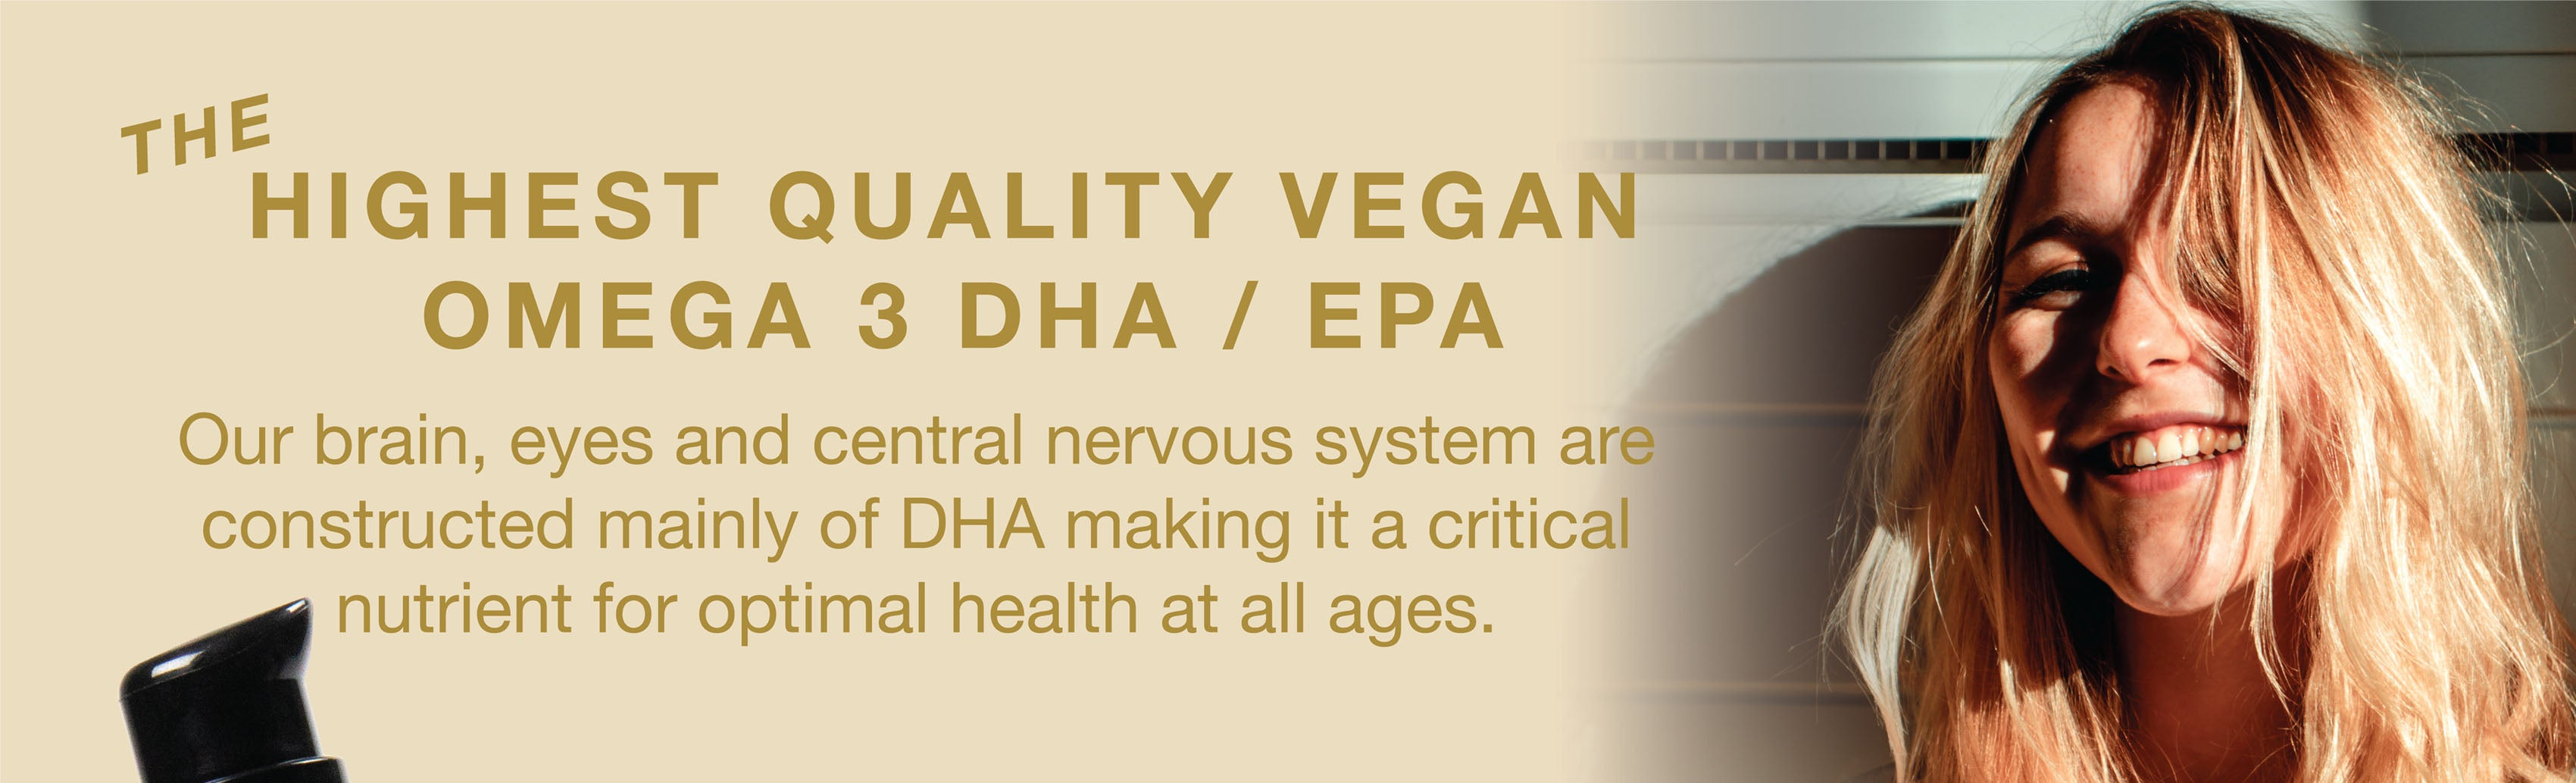 The highest quality vegan omega 3 DHA / EPA for our brains, eyes and central nervous system.